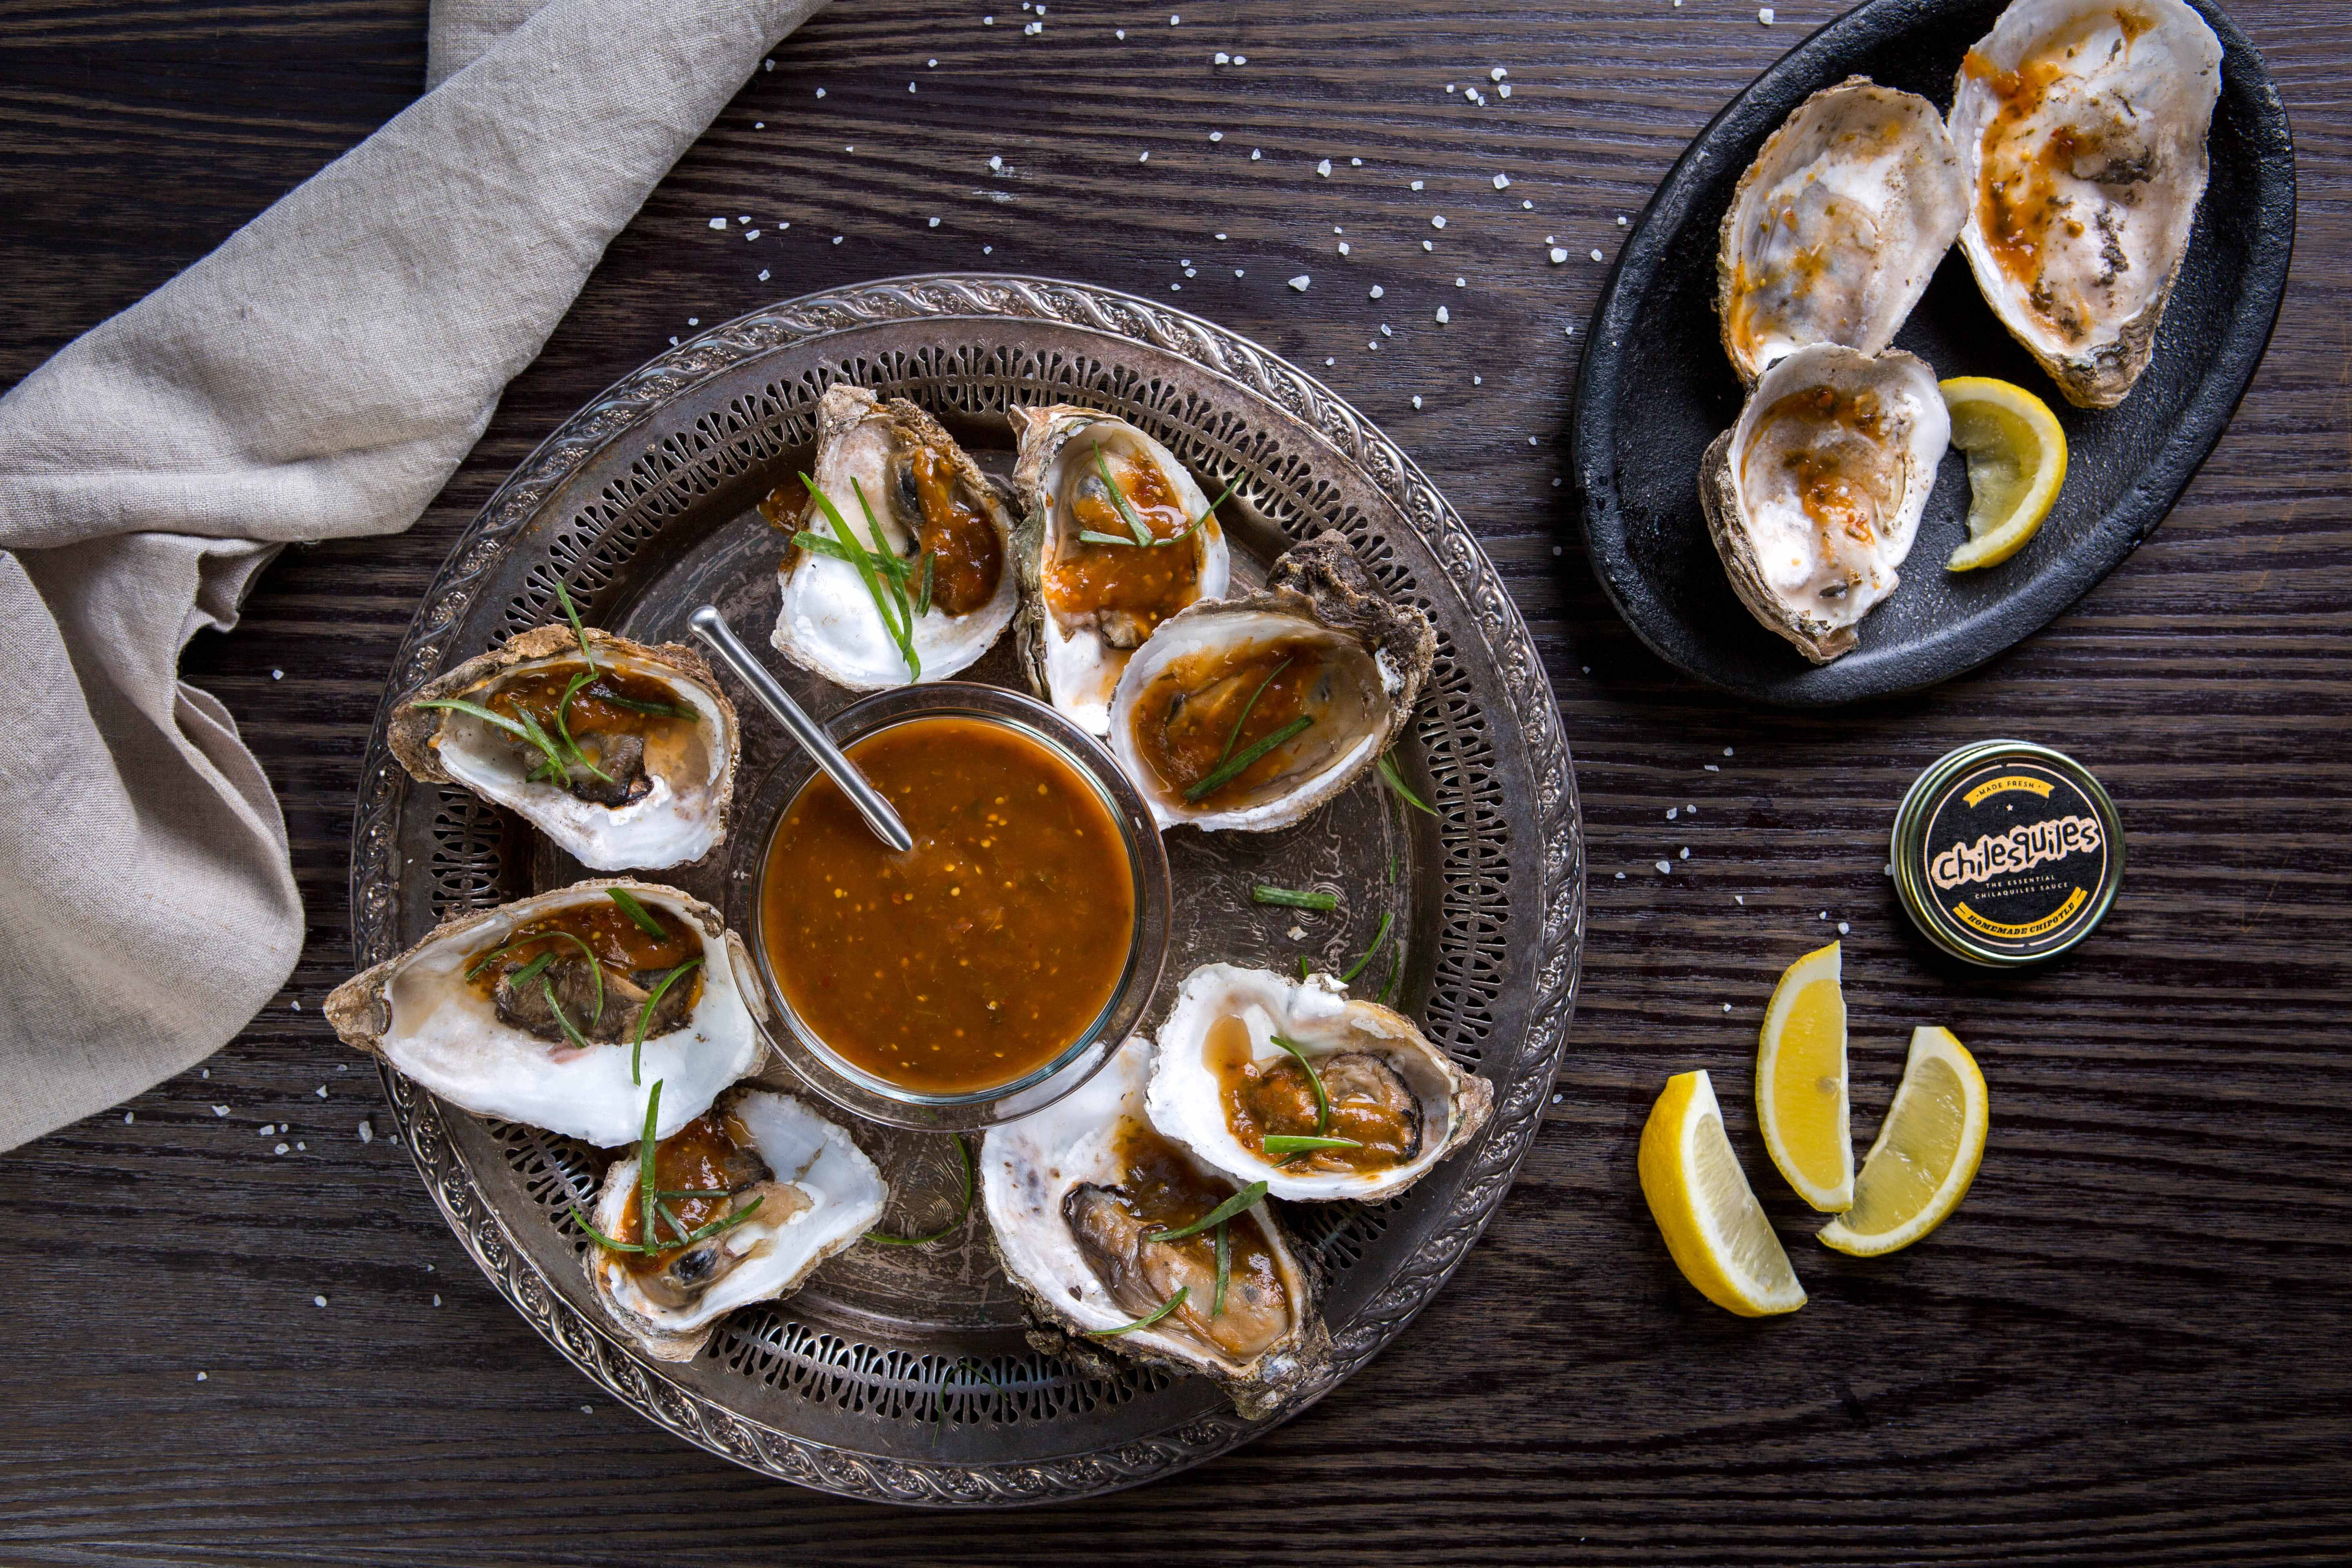 OYSTERS WITH HOMEMADE CHIPOTLE